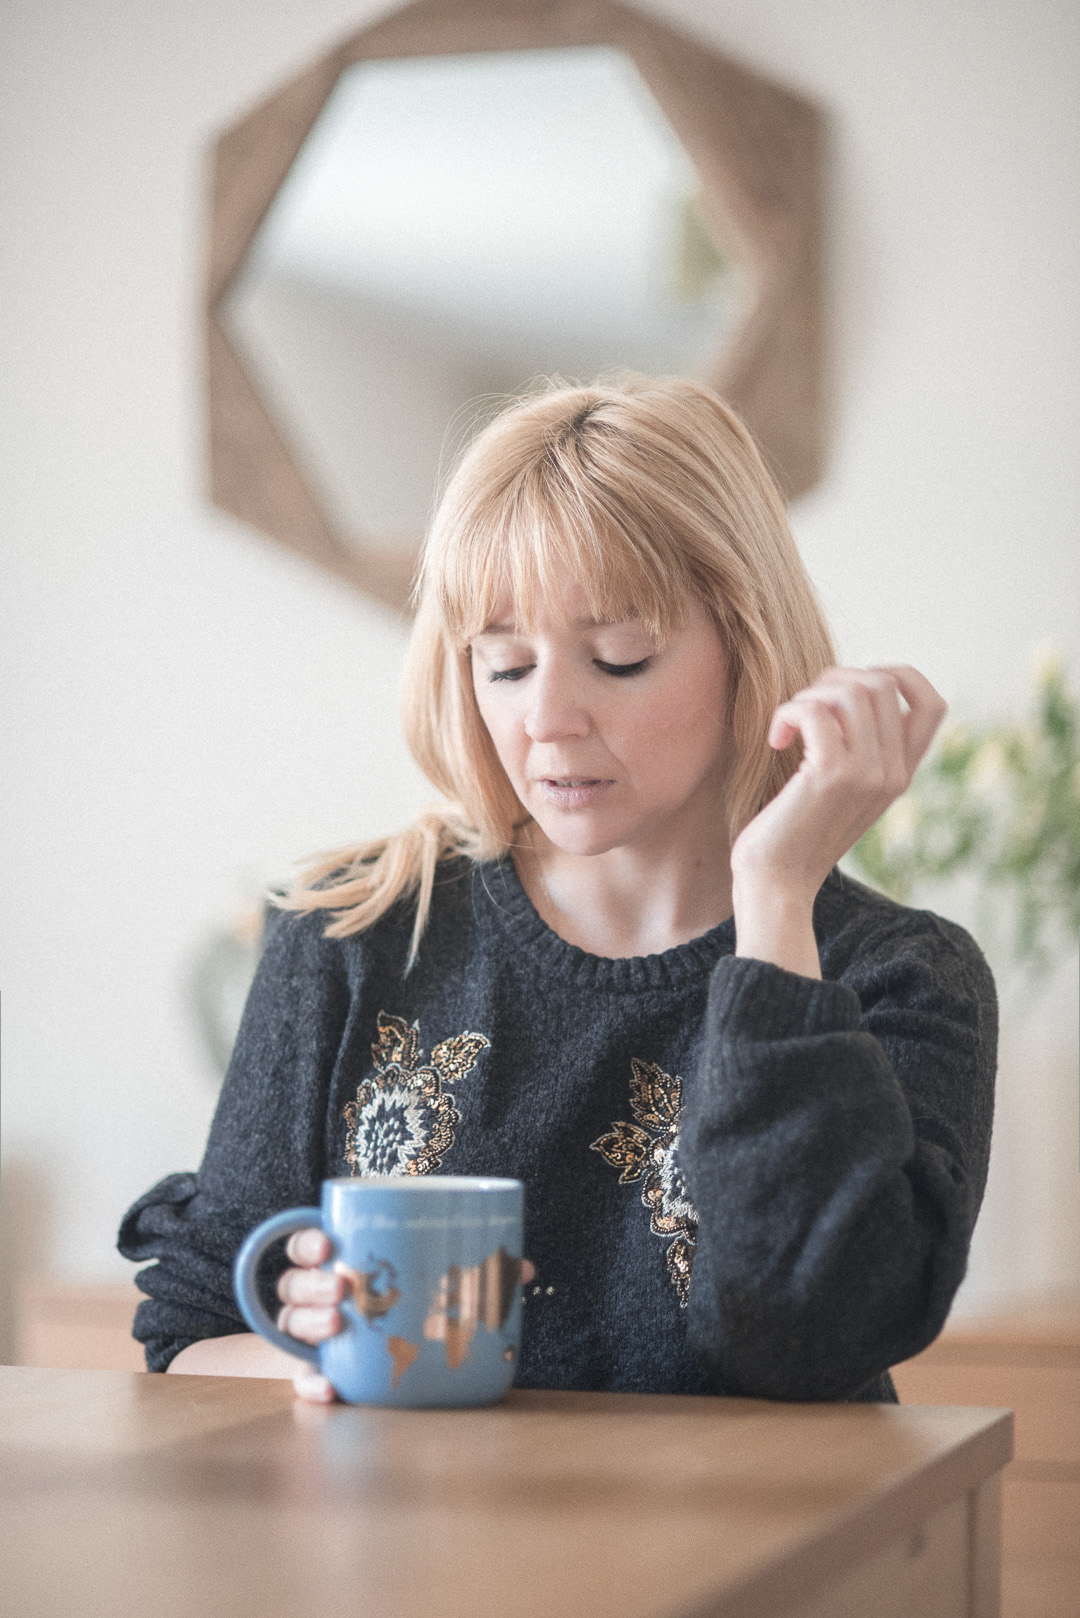 The dangers of laxative abuse in eating disorders - Beth Anne sits looking thoughtful